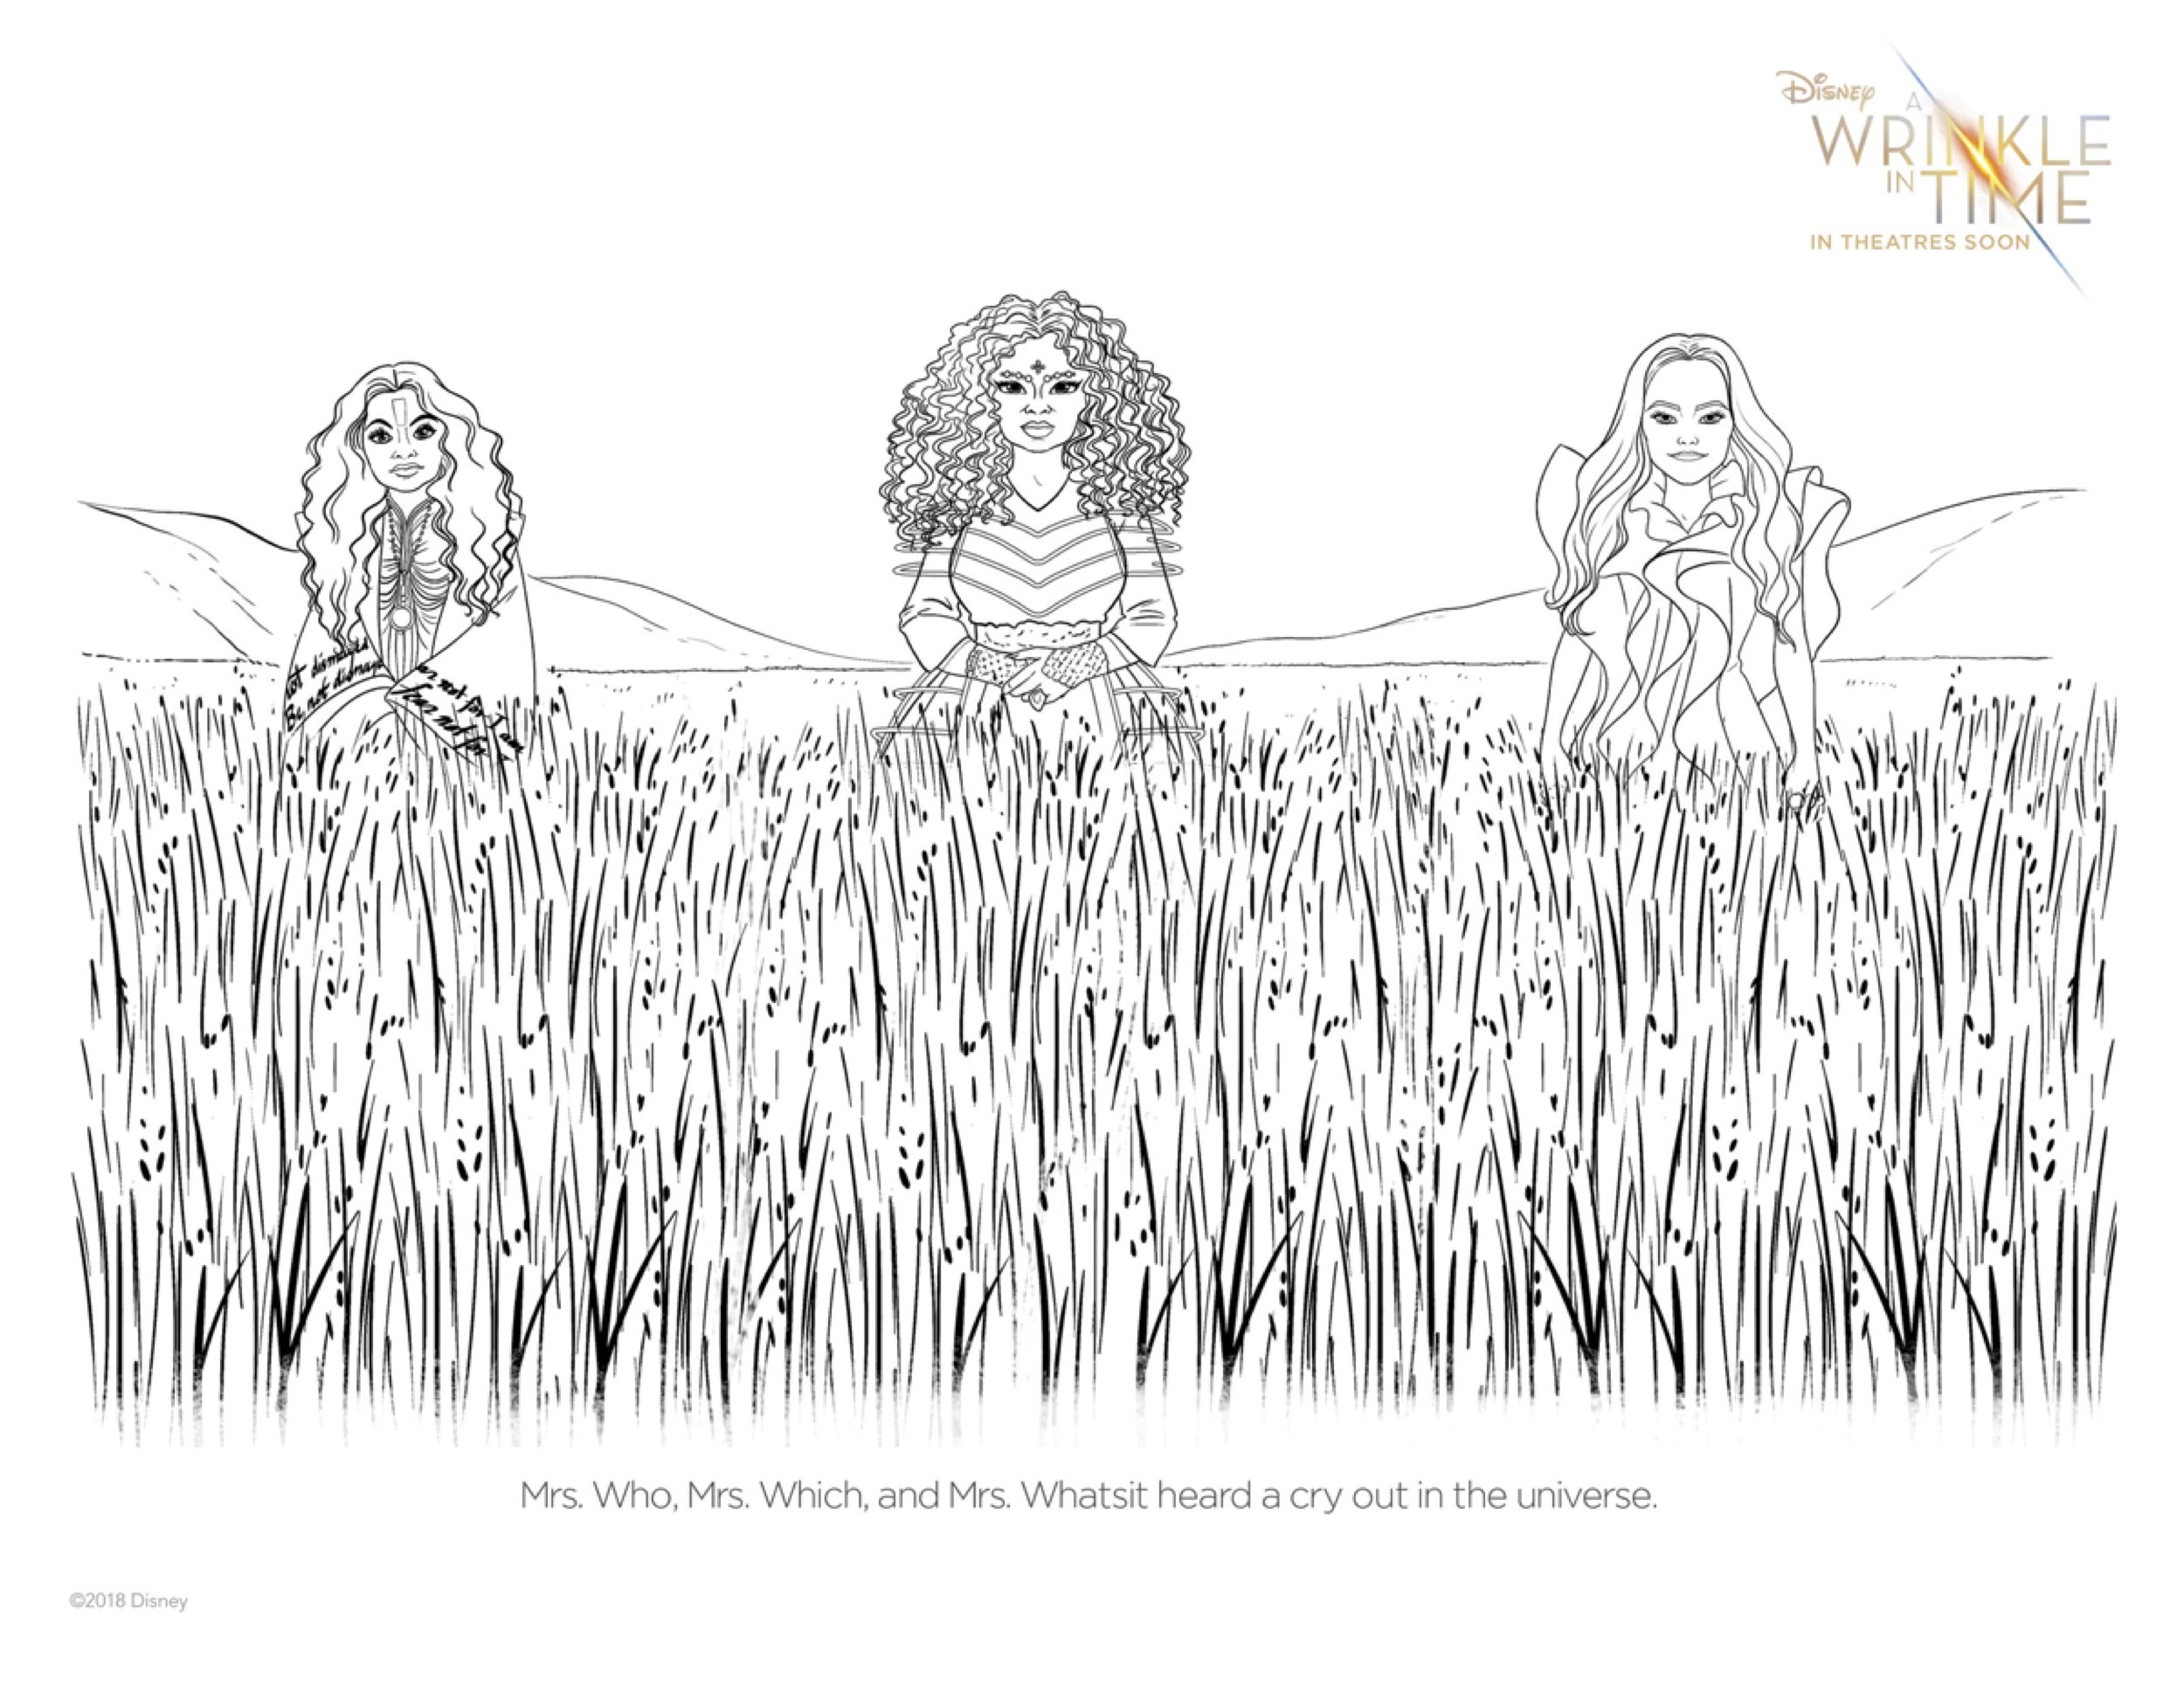 Free Printable A Wrinkle In Time Coloring Pages And Activities